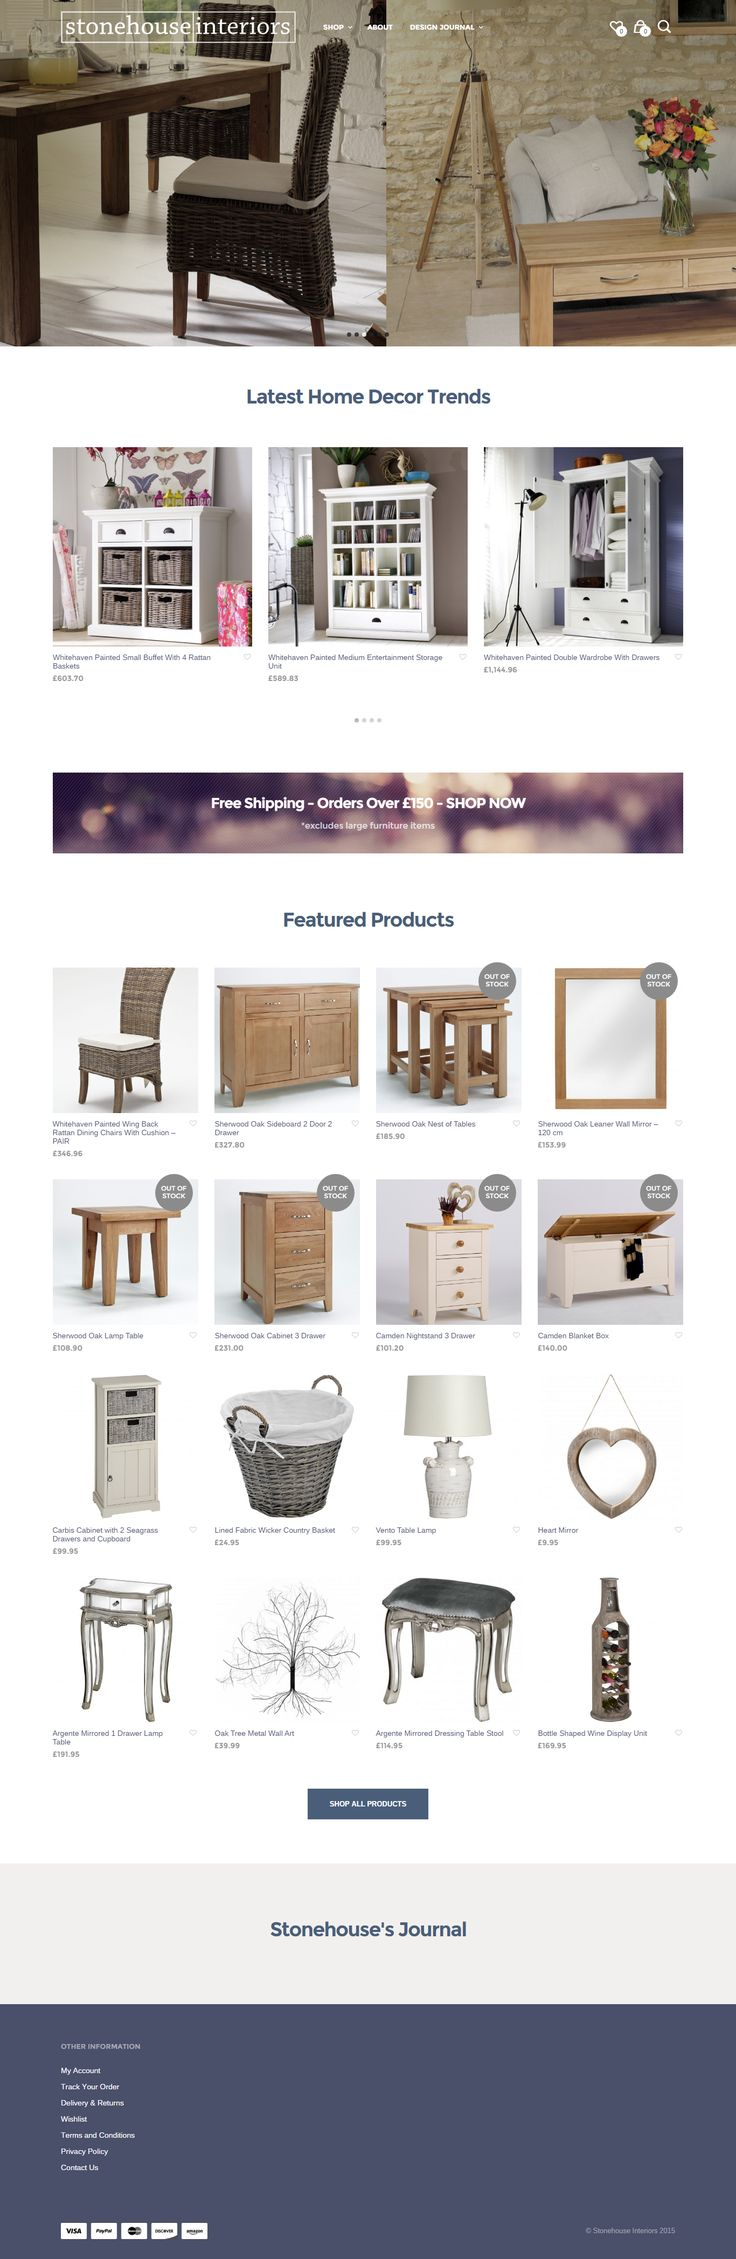 stonehouseinteriors.uk, beautiful #homefurniture shop built with Mr Tailor WordPress theme #eCommerce #mrtailor #wordpress #webdesign #interiordesign #homeinterior http://themeforest.net/item/mr-tailor-responsive-woocommerce-theme/7292110?&utm_source=pinterest.com&utm_medium=social&utm_content=stonehouse-interiors&utm_campaign=showcase